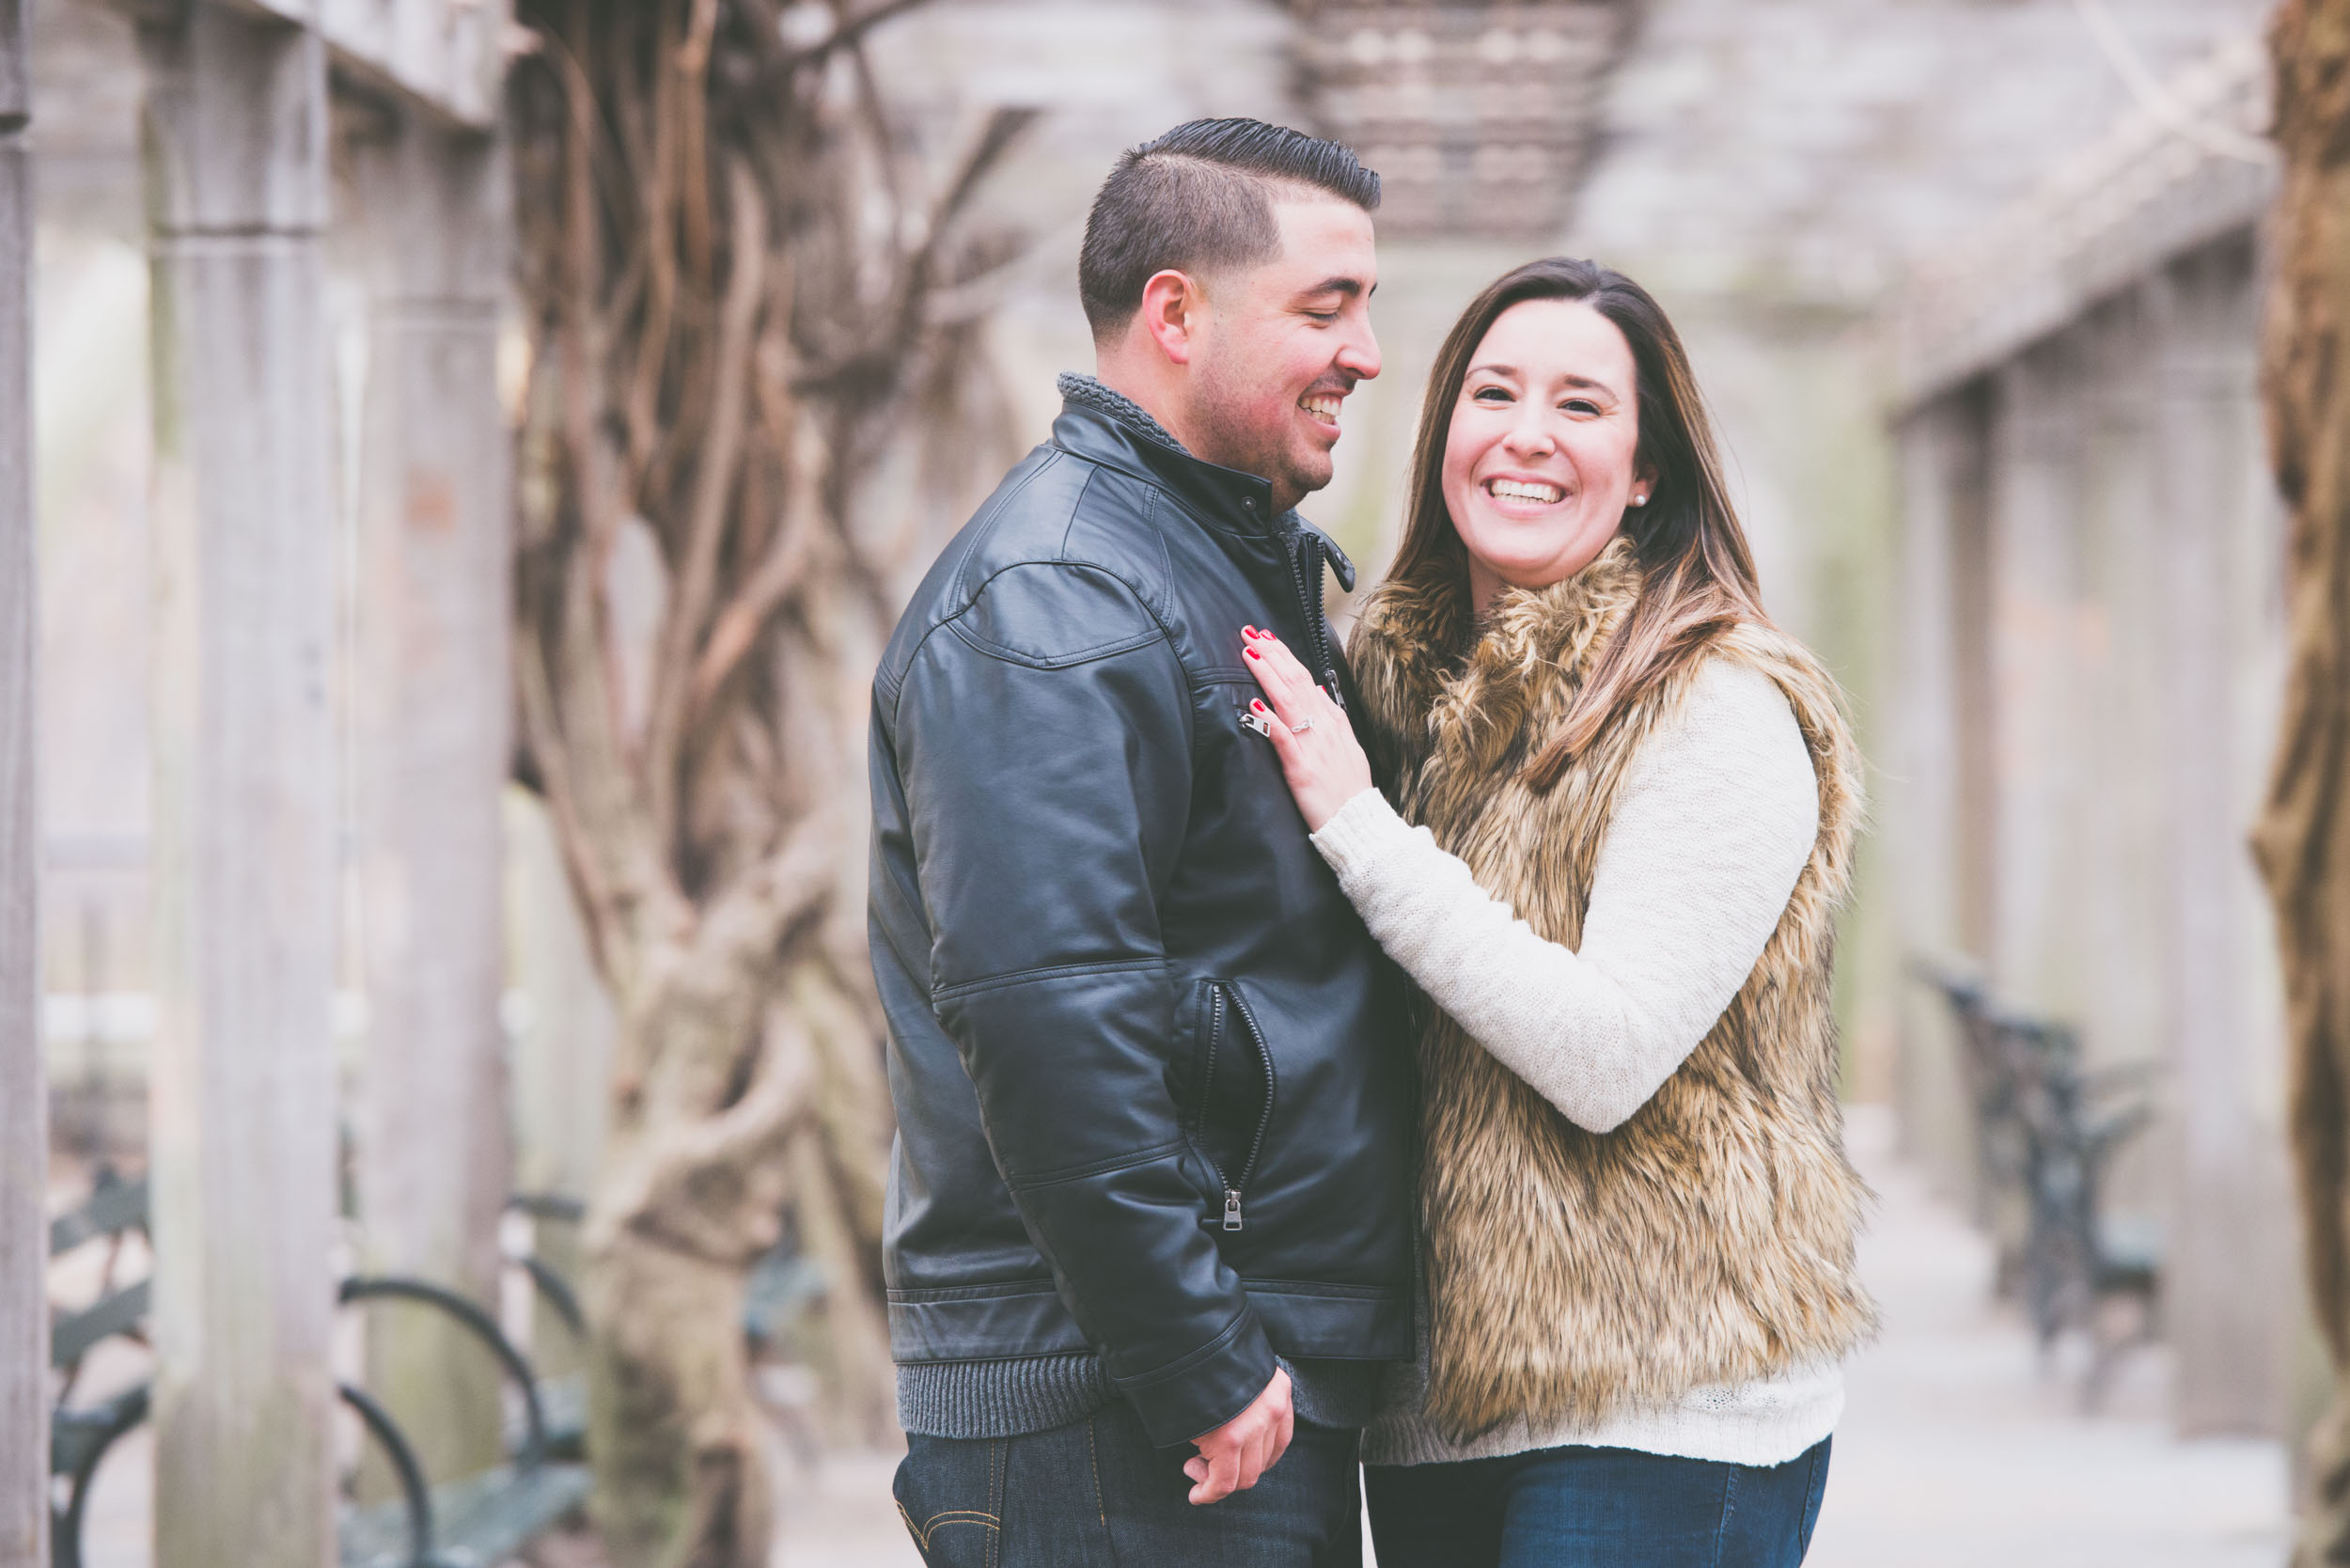 Laughing under wooden beams in Central Park - Engagement Portraits - Photo credit Nicola Bailey.jpg